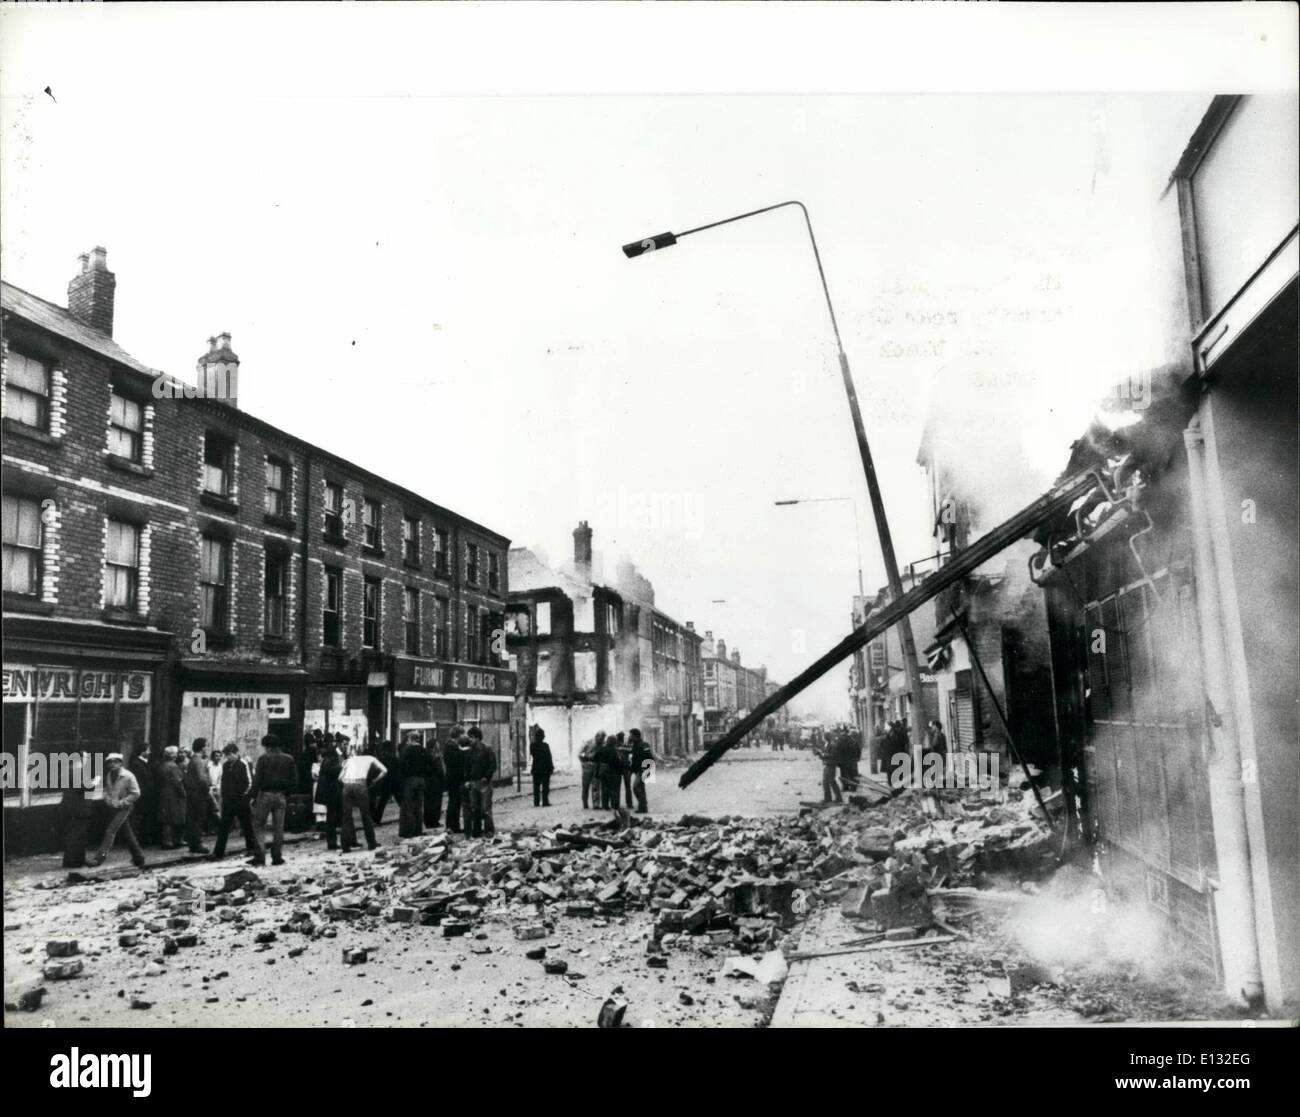 Feb. 26, 2012 - Riots In Toxteth: A riot-torn street in Toxteth after a night of rioting by about 400 black and whit youths it reminded the locas after a night in the blitz during the last war. - Stock Image